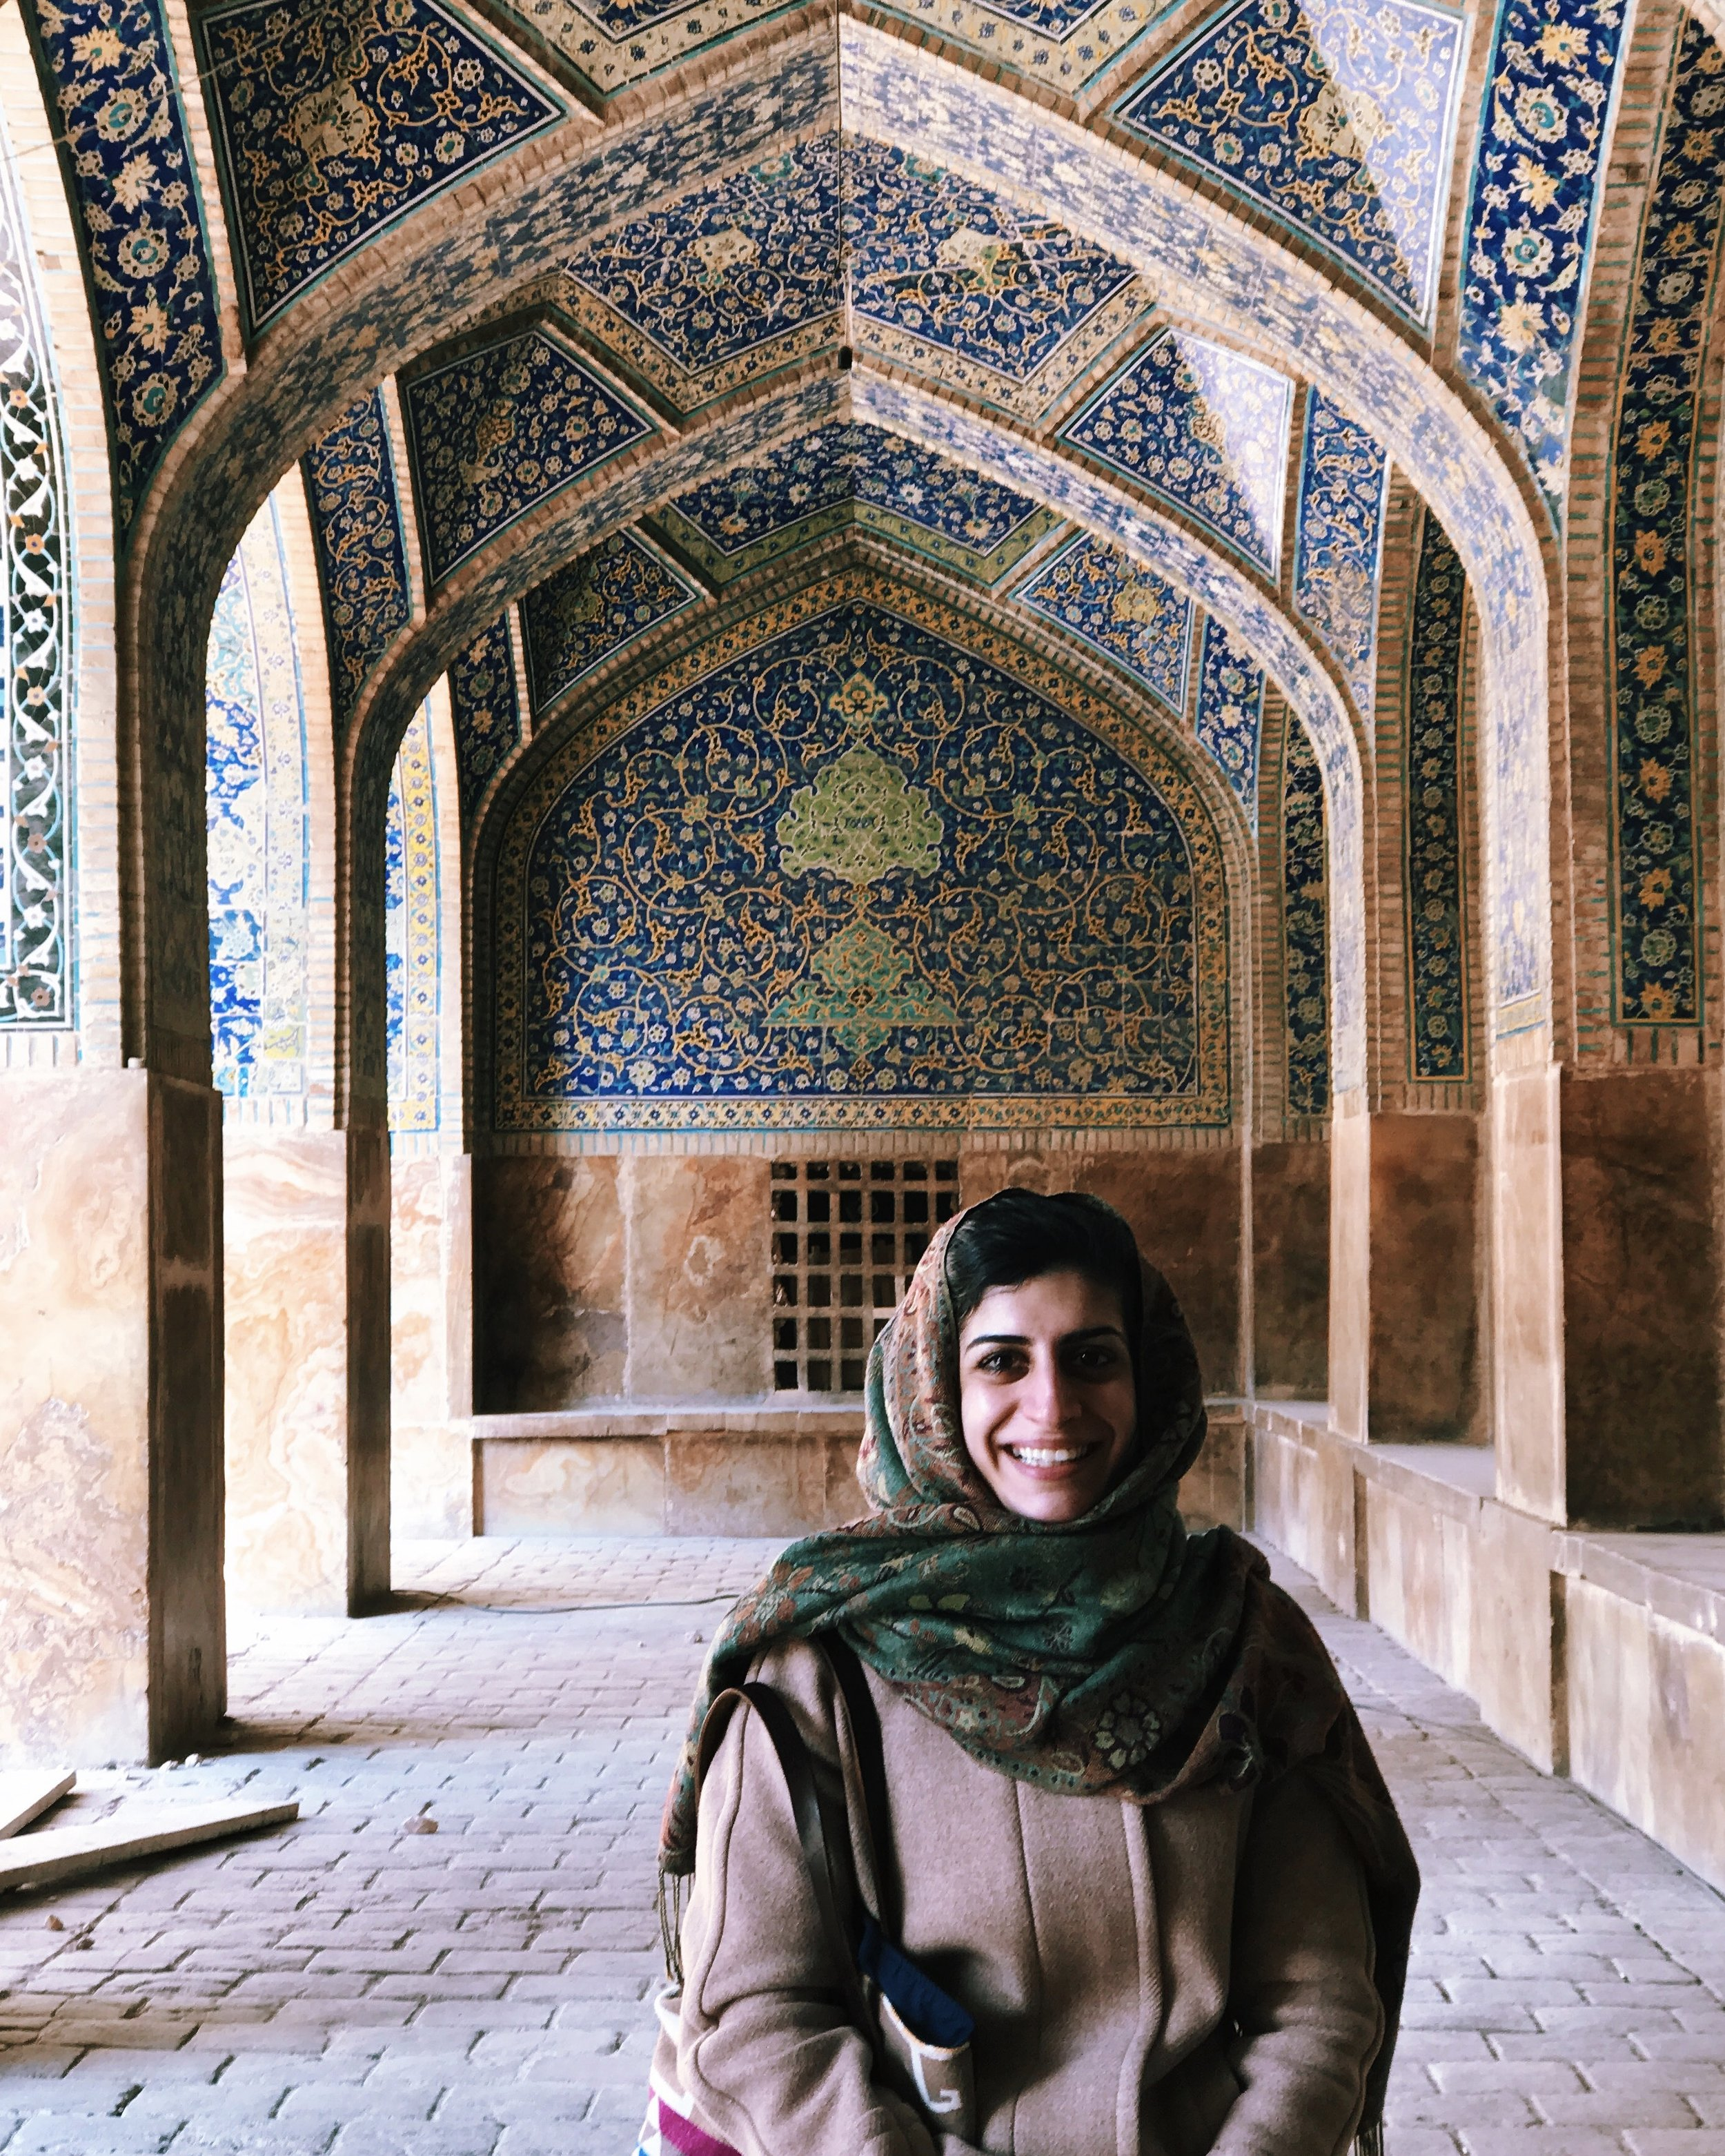 At a mosque in Esfahan, Iran